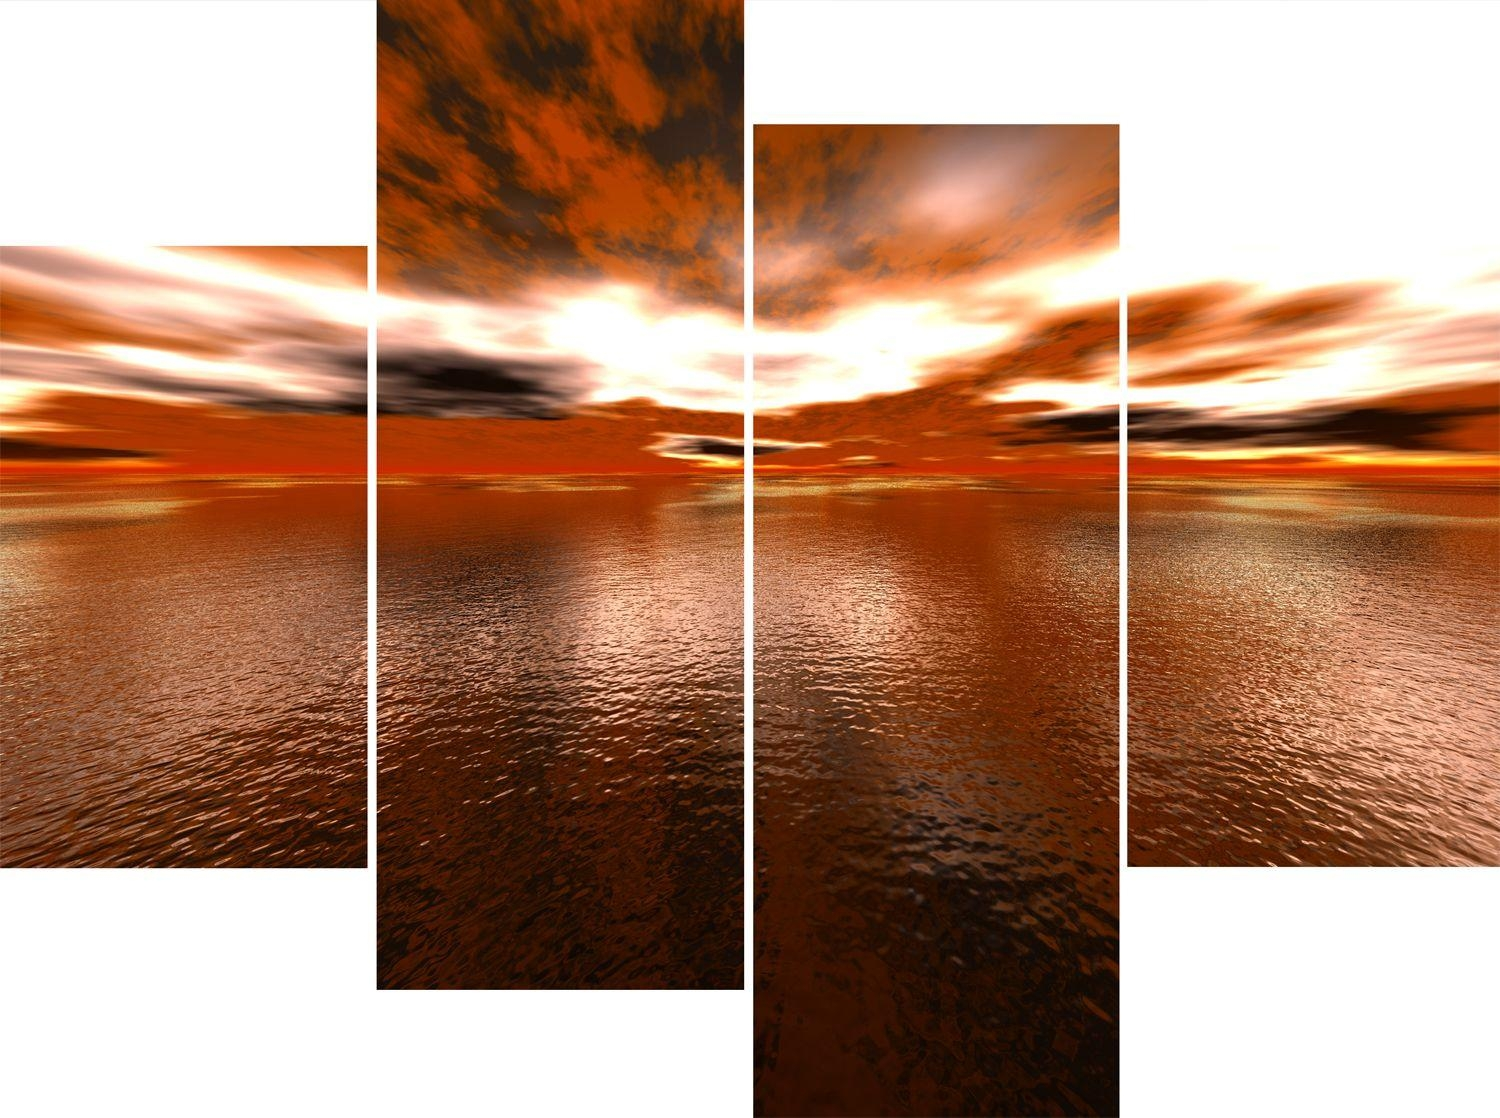 Mesmerizing Large Canvas Wall Art For Your Home Decorations With Regard To Uk Contemporary Wall Art (View 6 of 20)